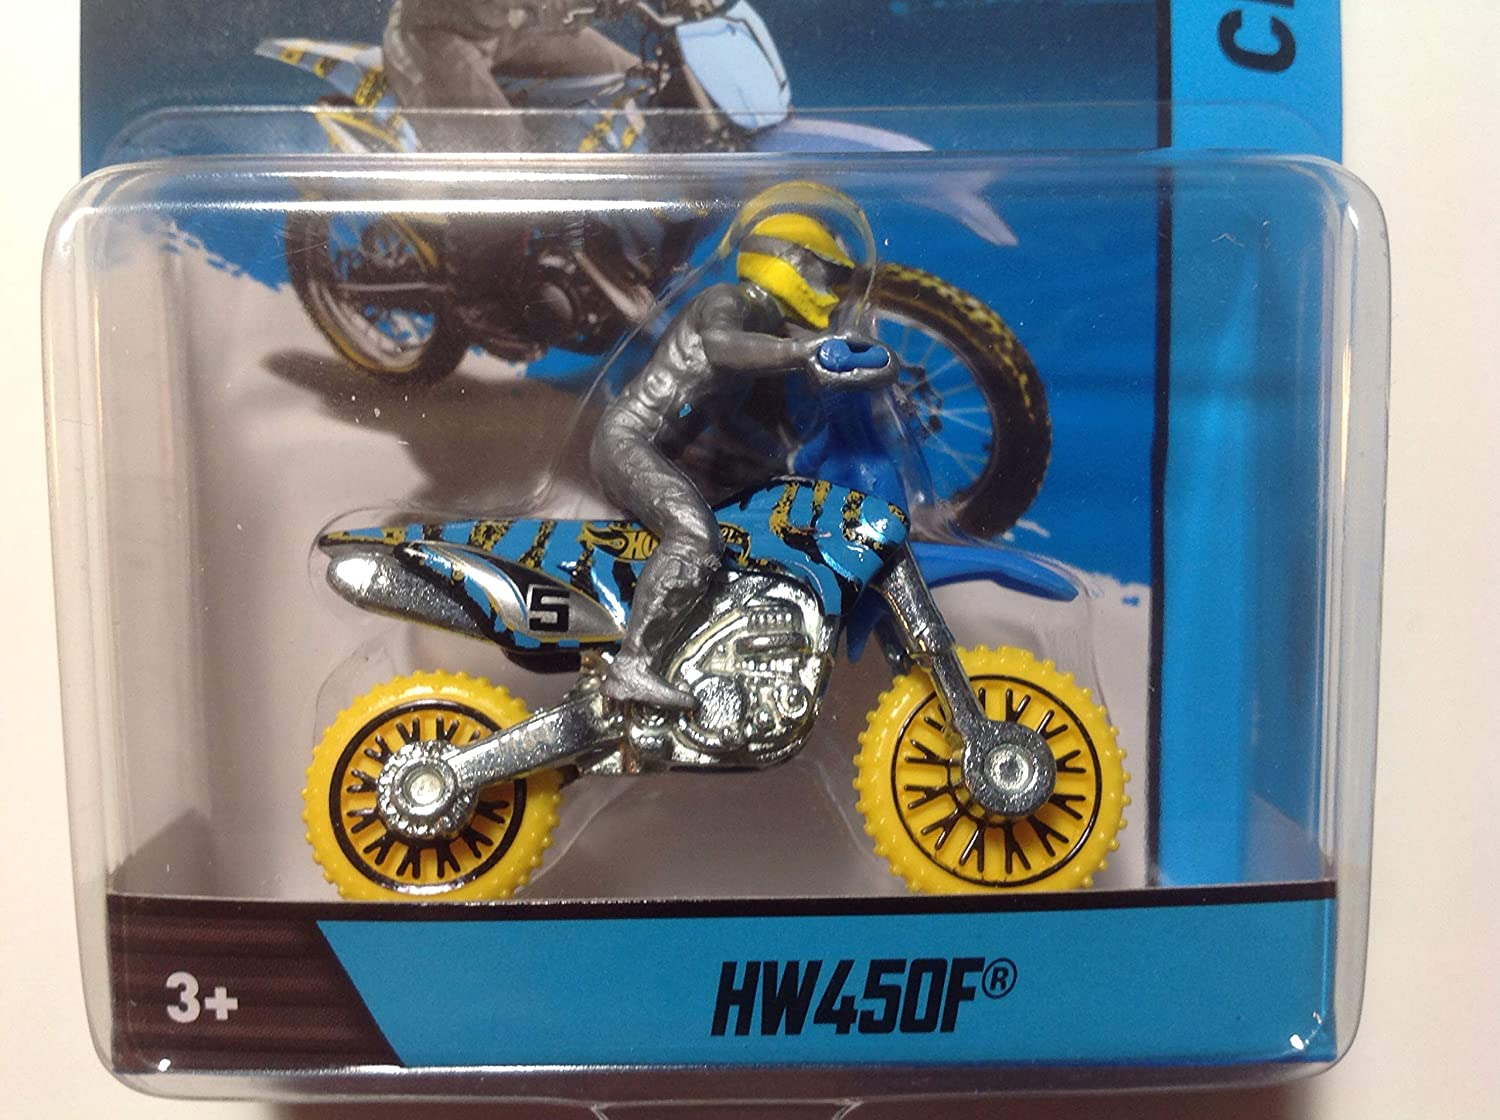 HW450F MOTORCYCLE /& RIDER Hot Wheels 1:64 Scale 2012 Die-Cast Vehicle Blue /& Yellow